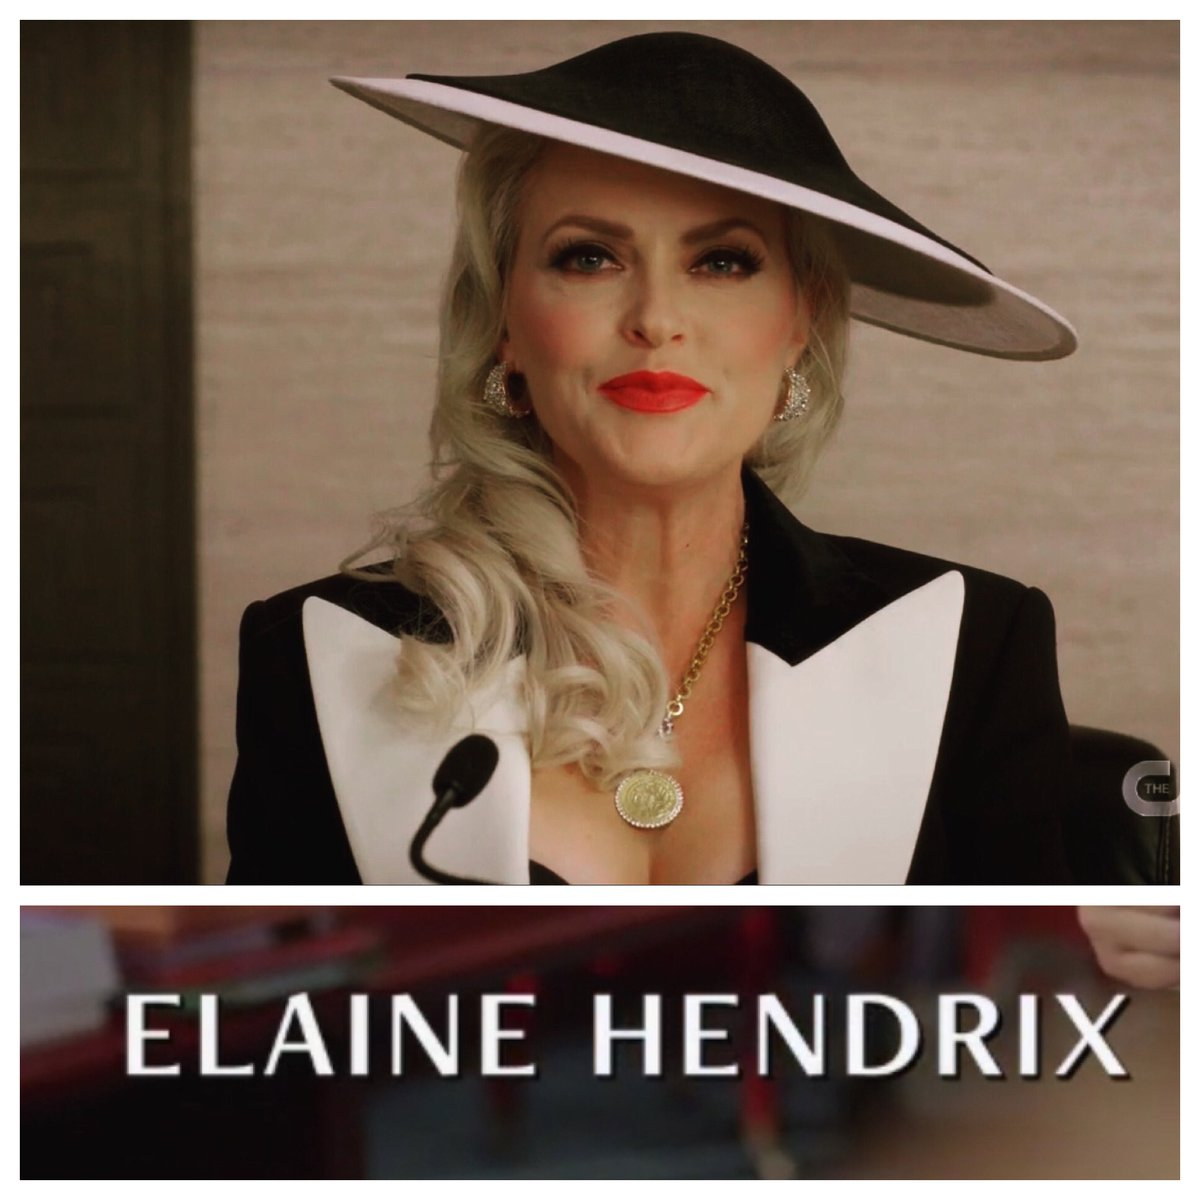 Alexis Carrington Colby is back! Congrats @elaine4animals This is going to be soooo good. ❤️ #Dynasty #Alexis